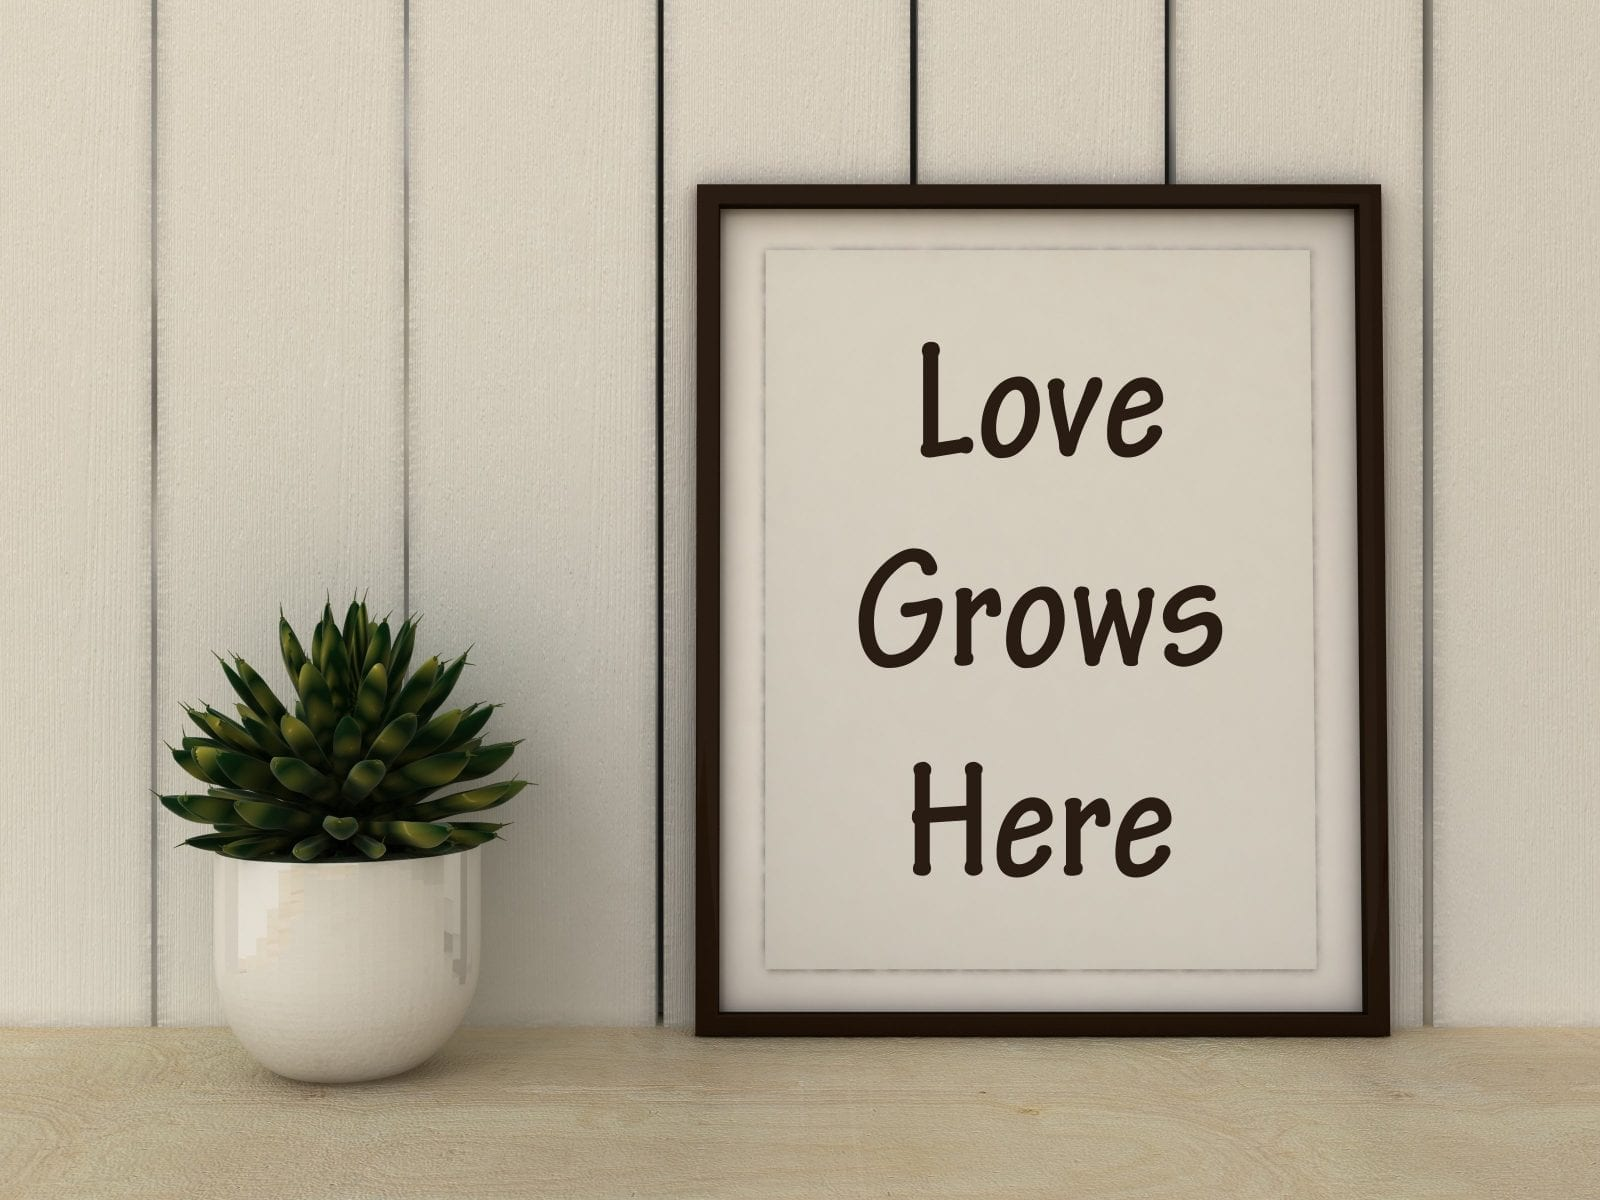 Love Grows Here - Heal Your Heart and Learn How to Date Again With The Love Mindset Dating System